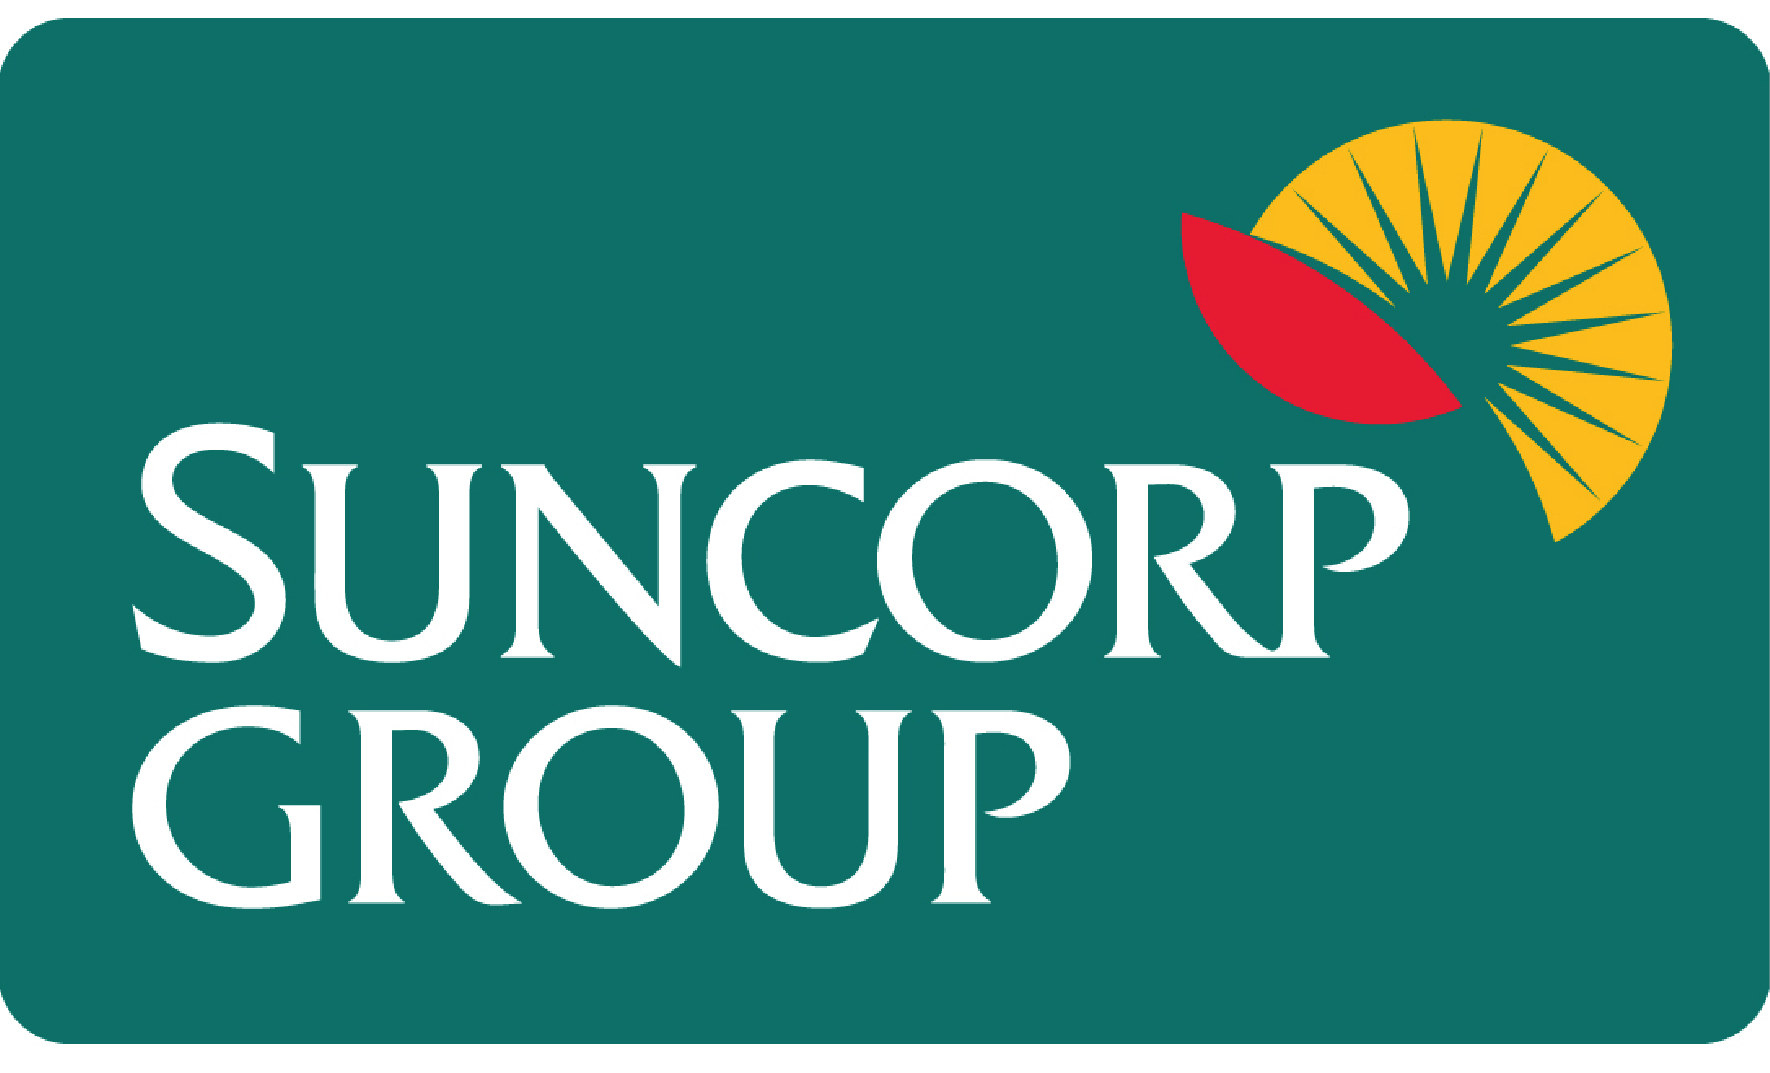 The speaker works for Suncorp Group